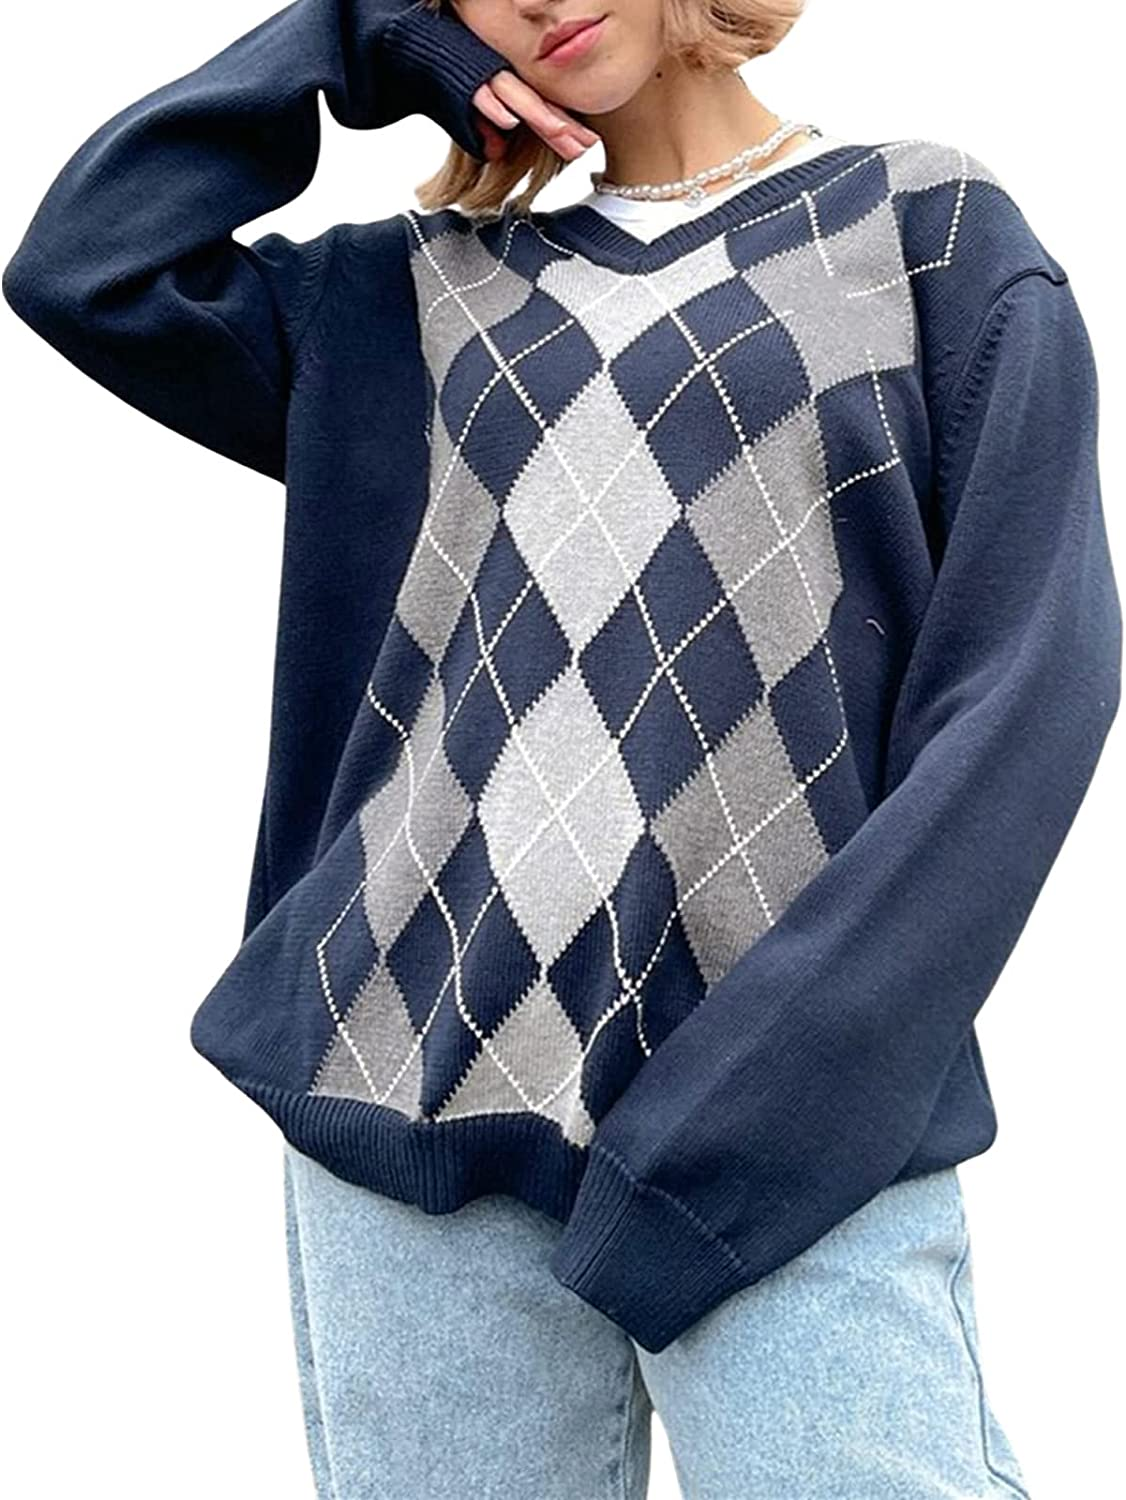 Women Y2K Argyle Inventory cleanup selling sale Plaid Sweater Pullover Sleeve Long Prepp Max 90% OFF V-Neck